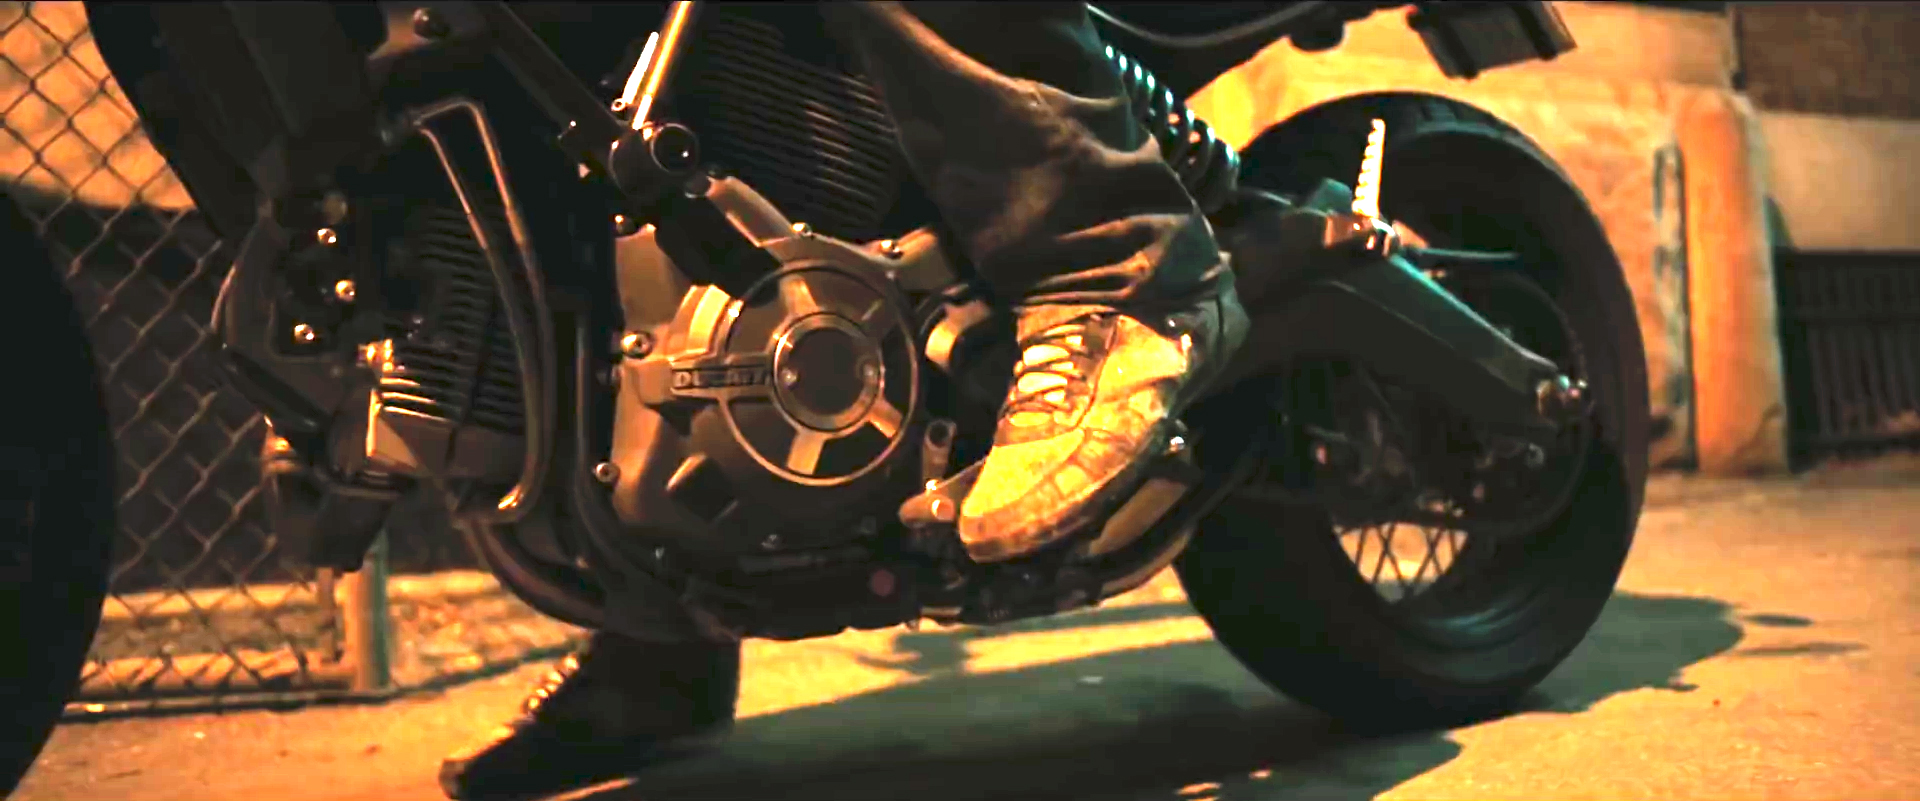 Venom Movie Motorcycle